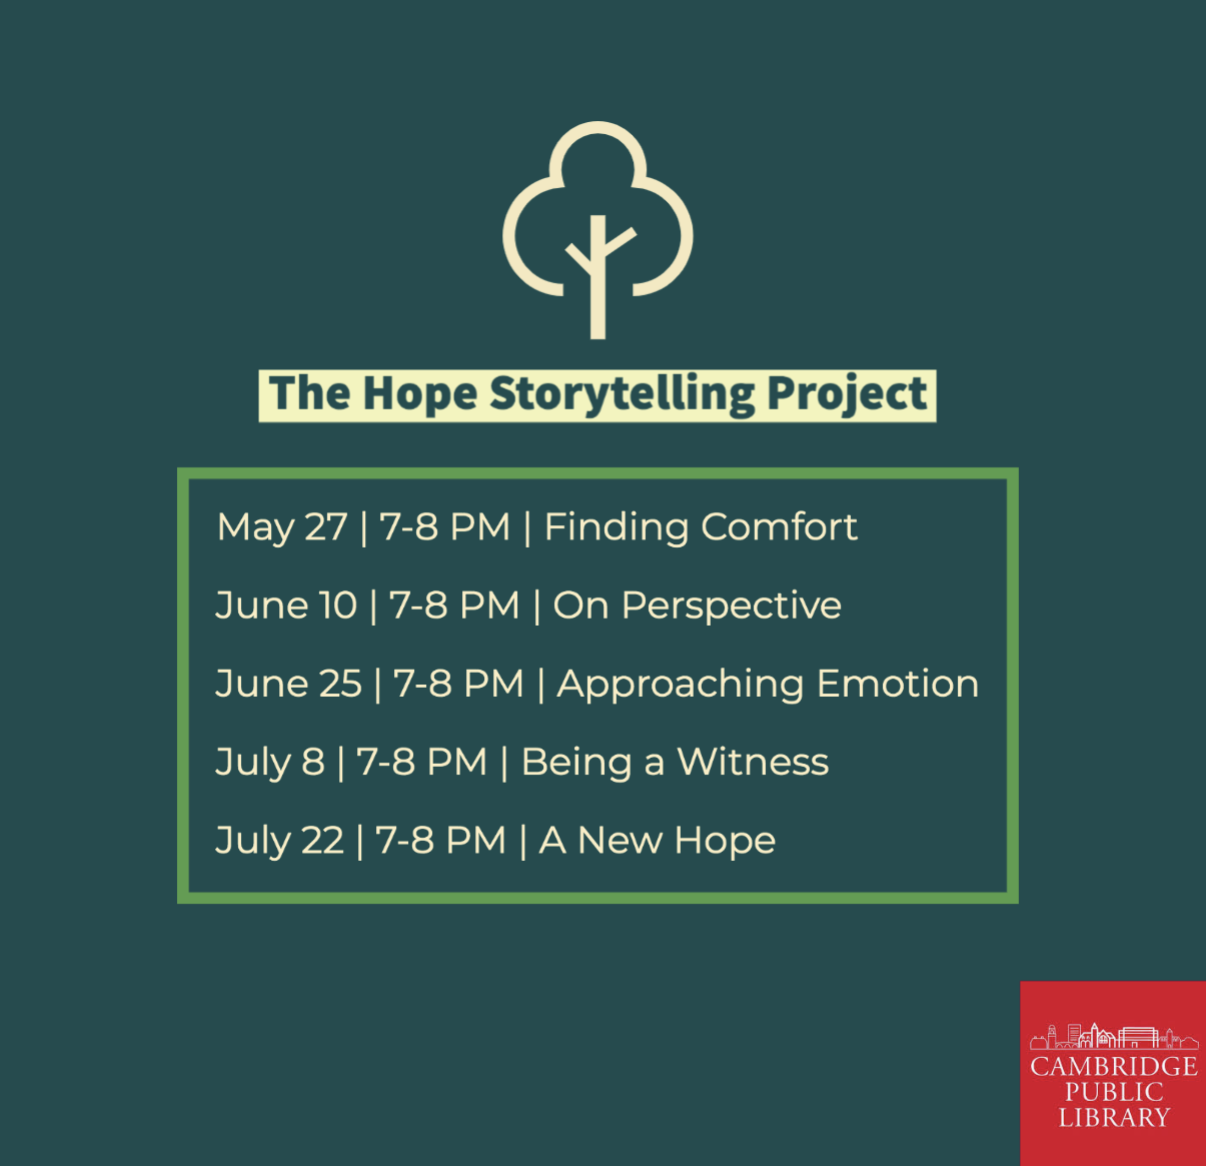 The Hope Storytelling Project: Understanding Perspective